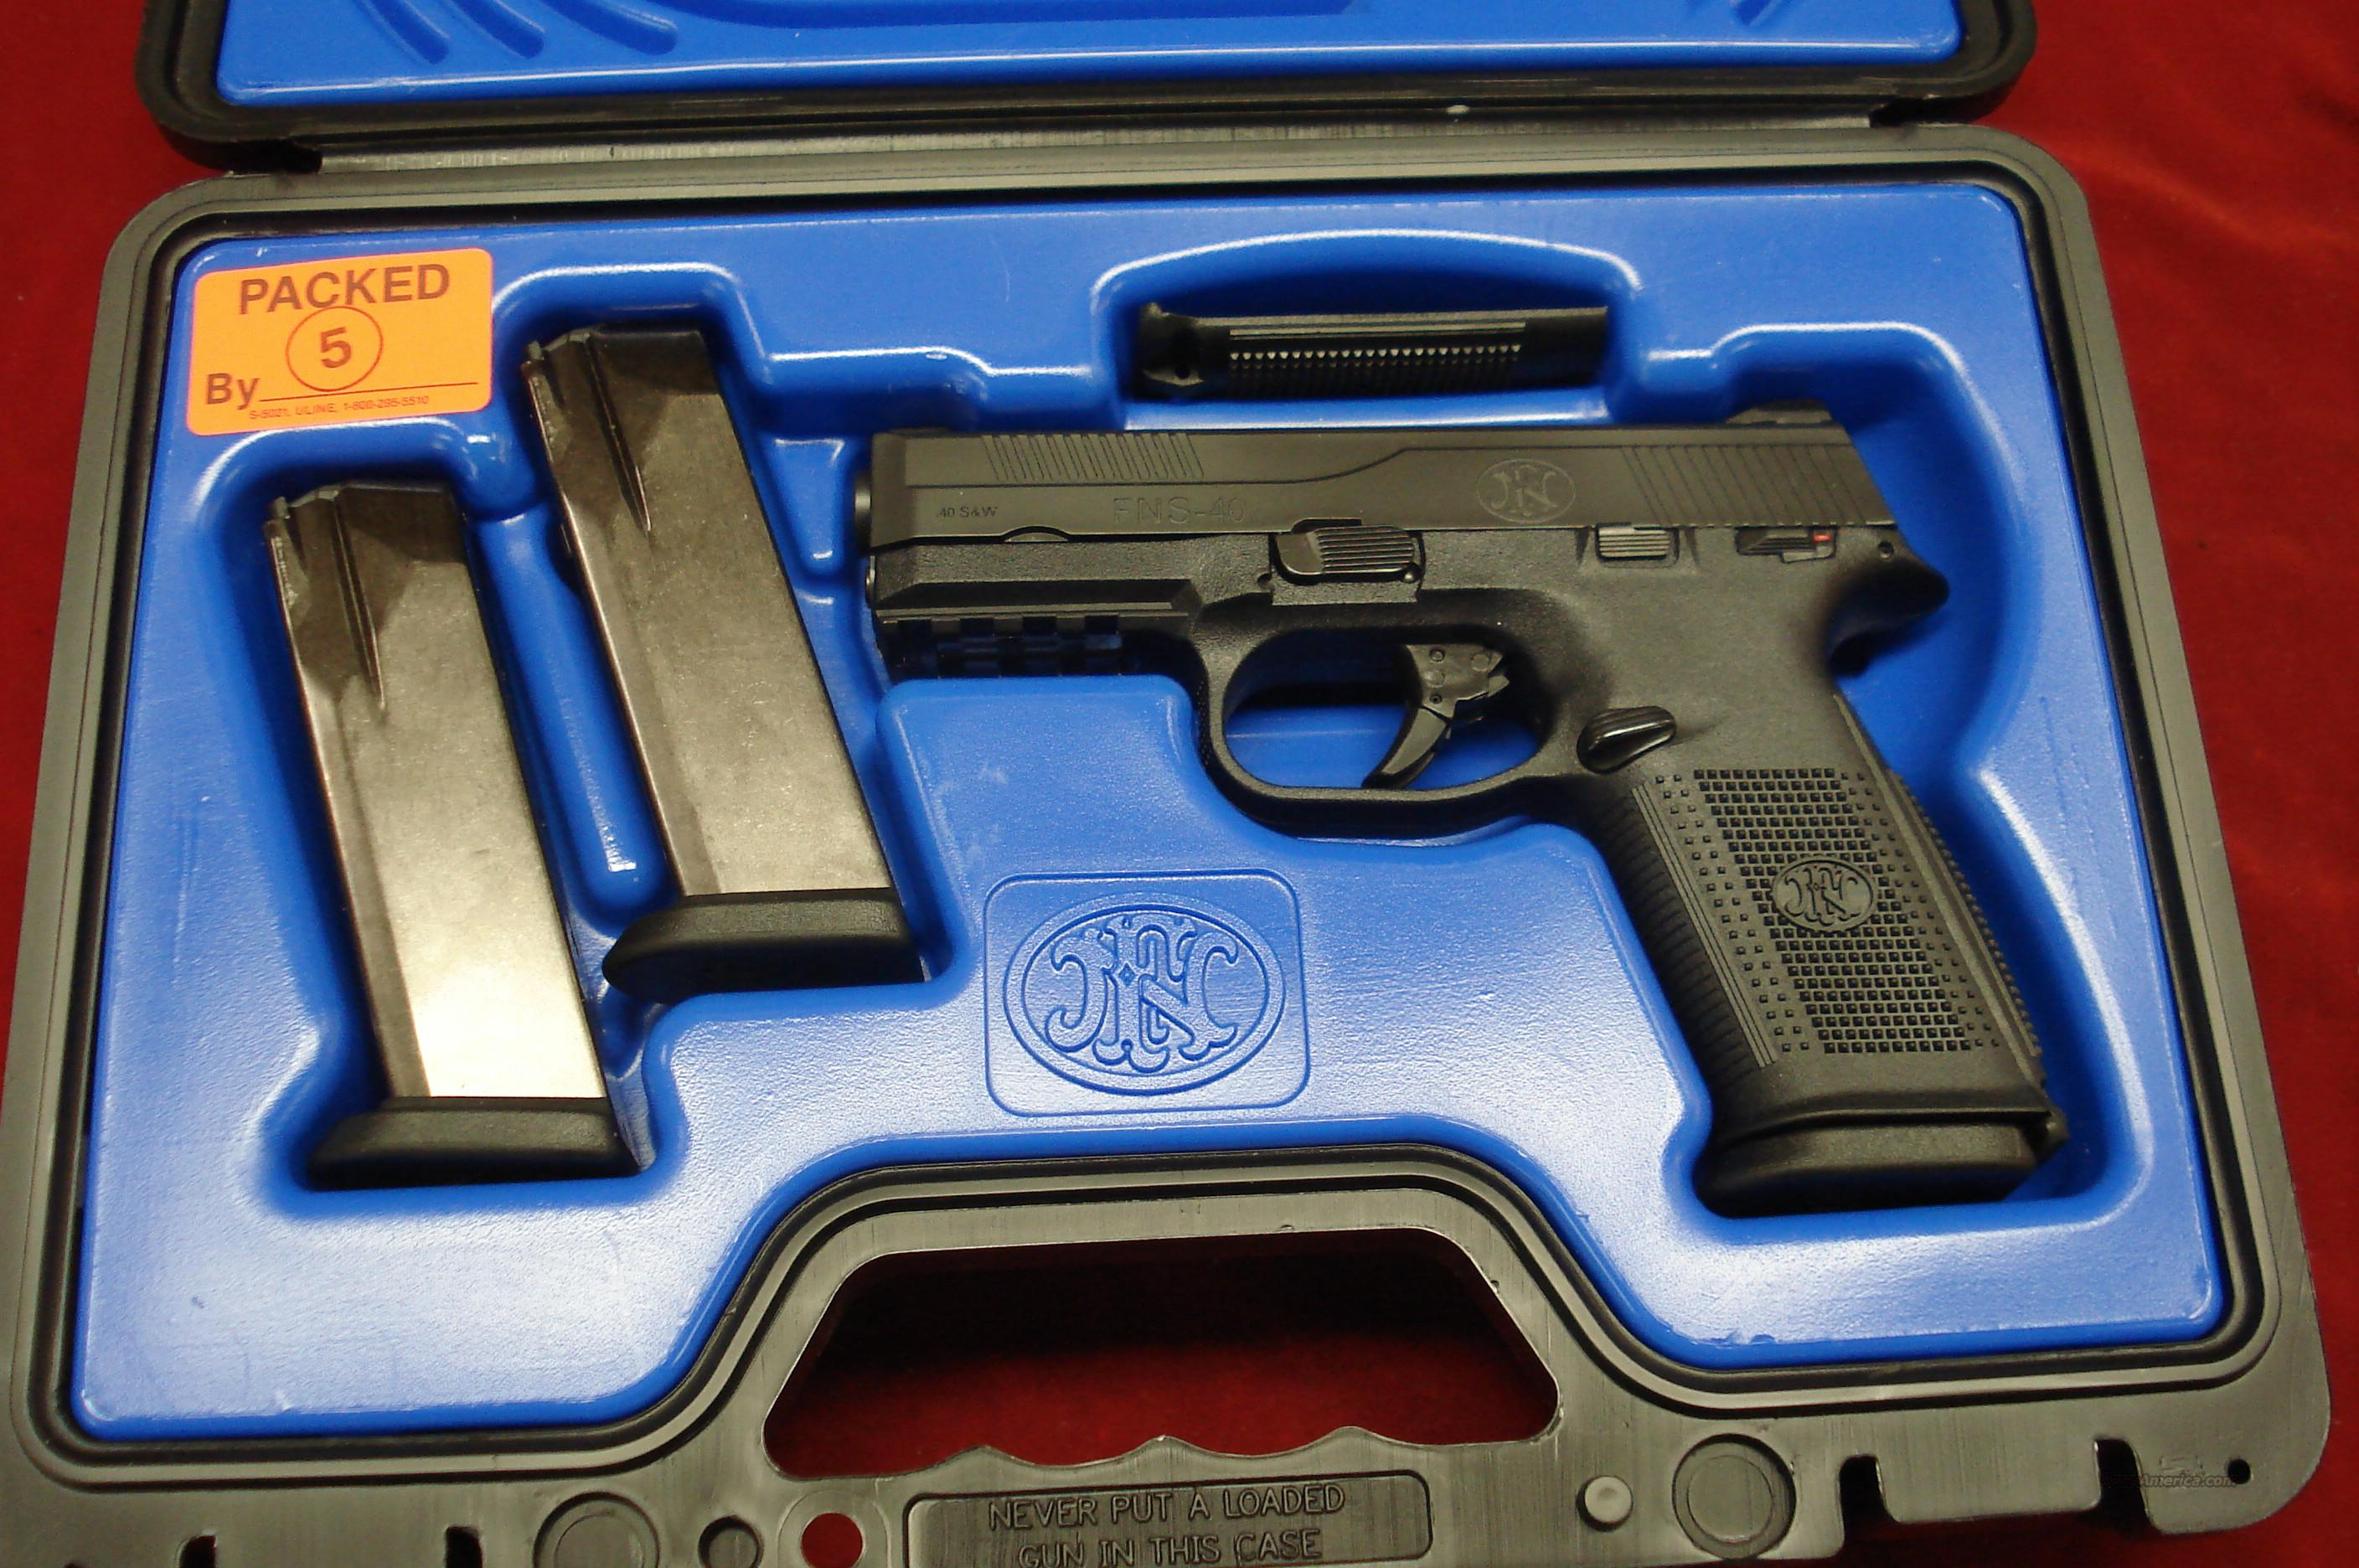 FN FNS-40 .40CAL. WITH 3 HIGH CAP. MAGAZINES NEW  (66940)   Guns > Pistols > FNH - Fabrique Nationale (FN) Pistols > FNP